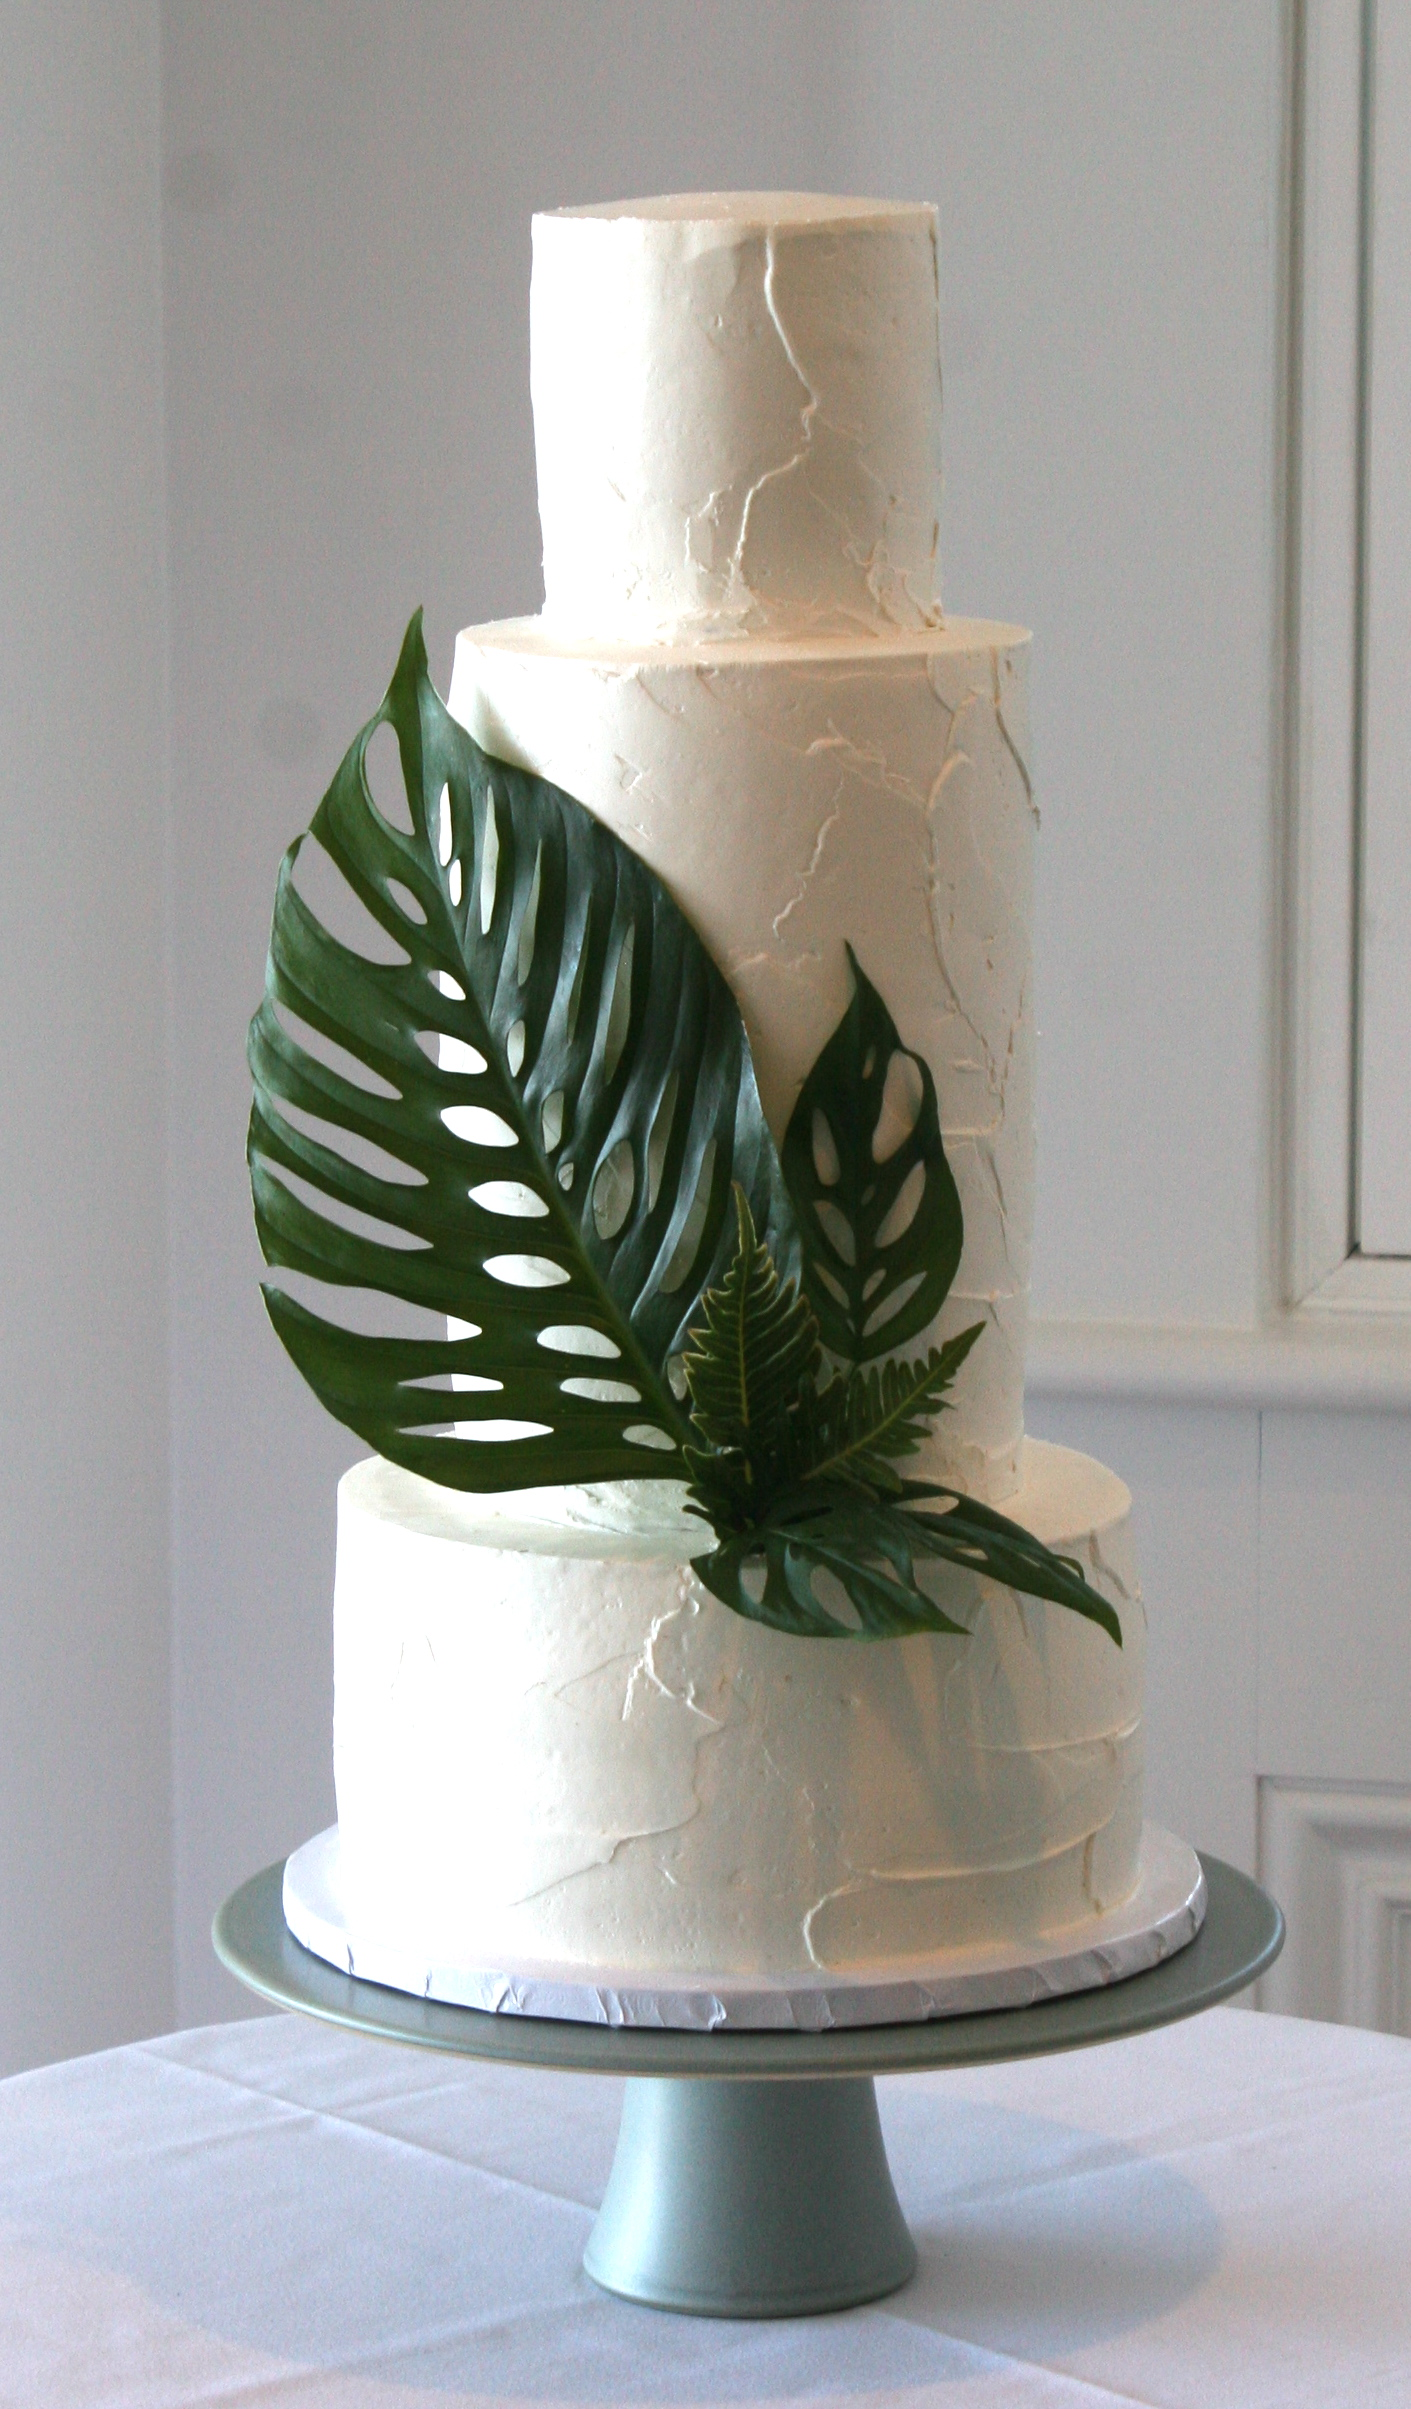 Fresh Floral And Pressed Edible Floral Birthday Cakes Charlottesville Virginia I frost the layers with either coconut or cream cheese frosting. edible floral birthday cakes